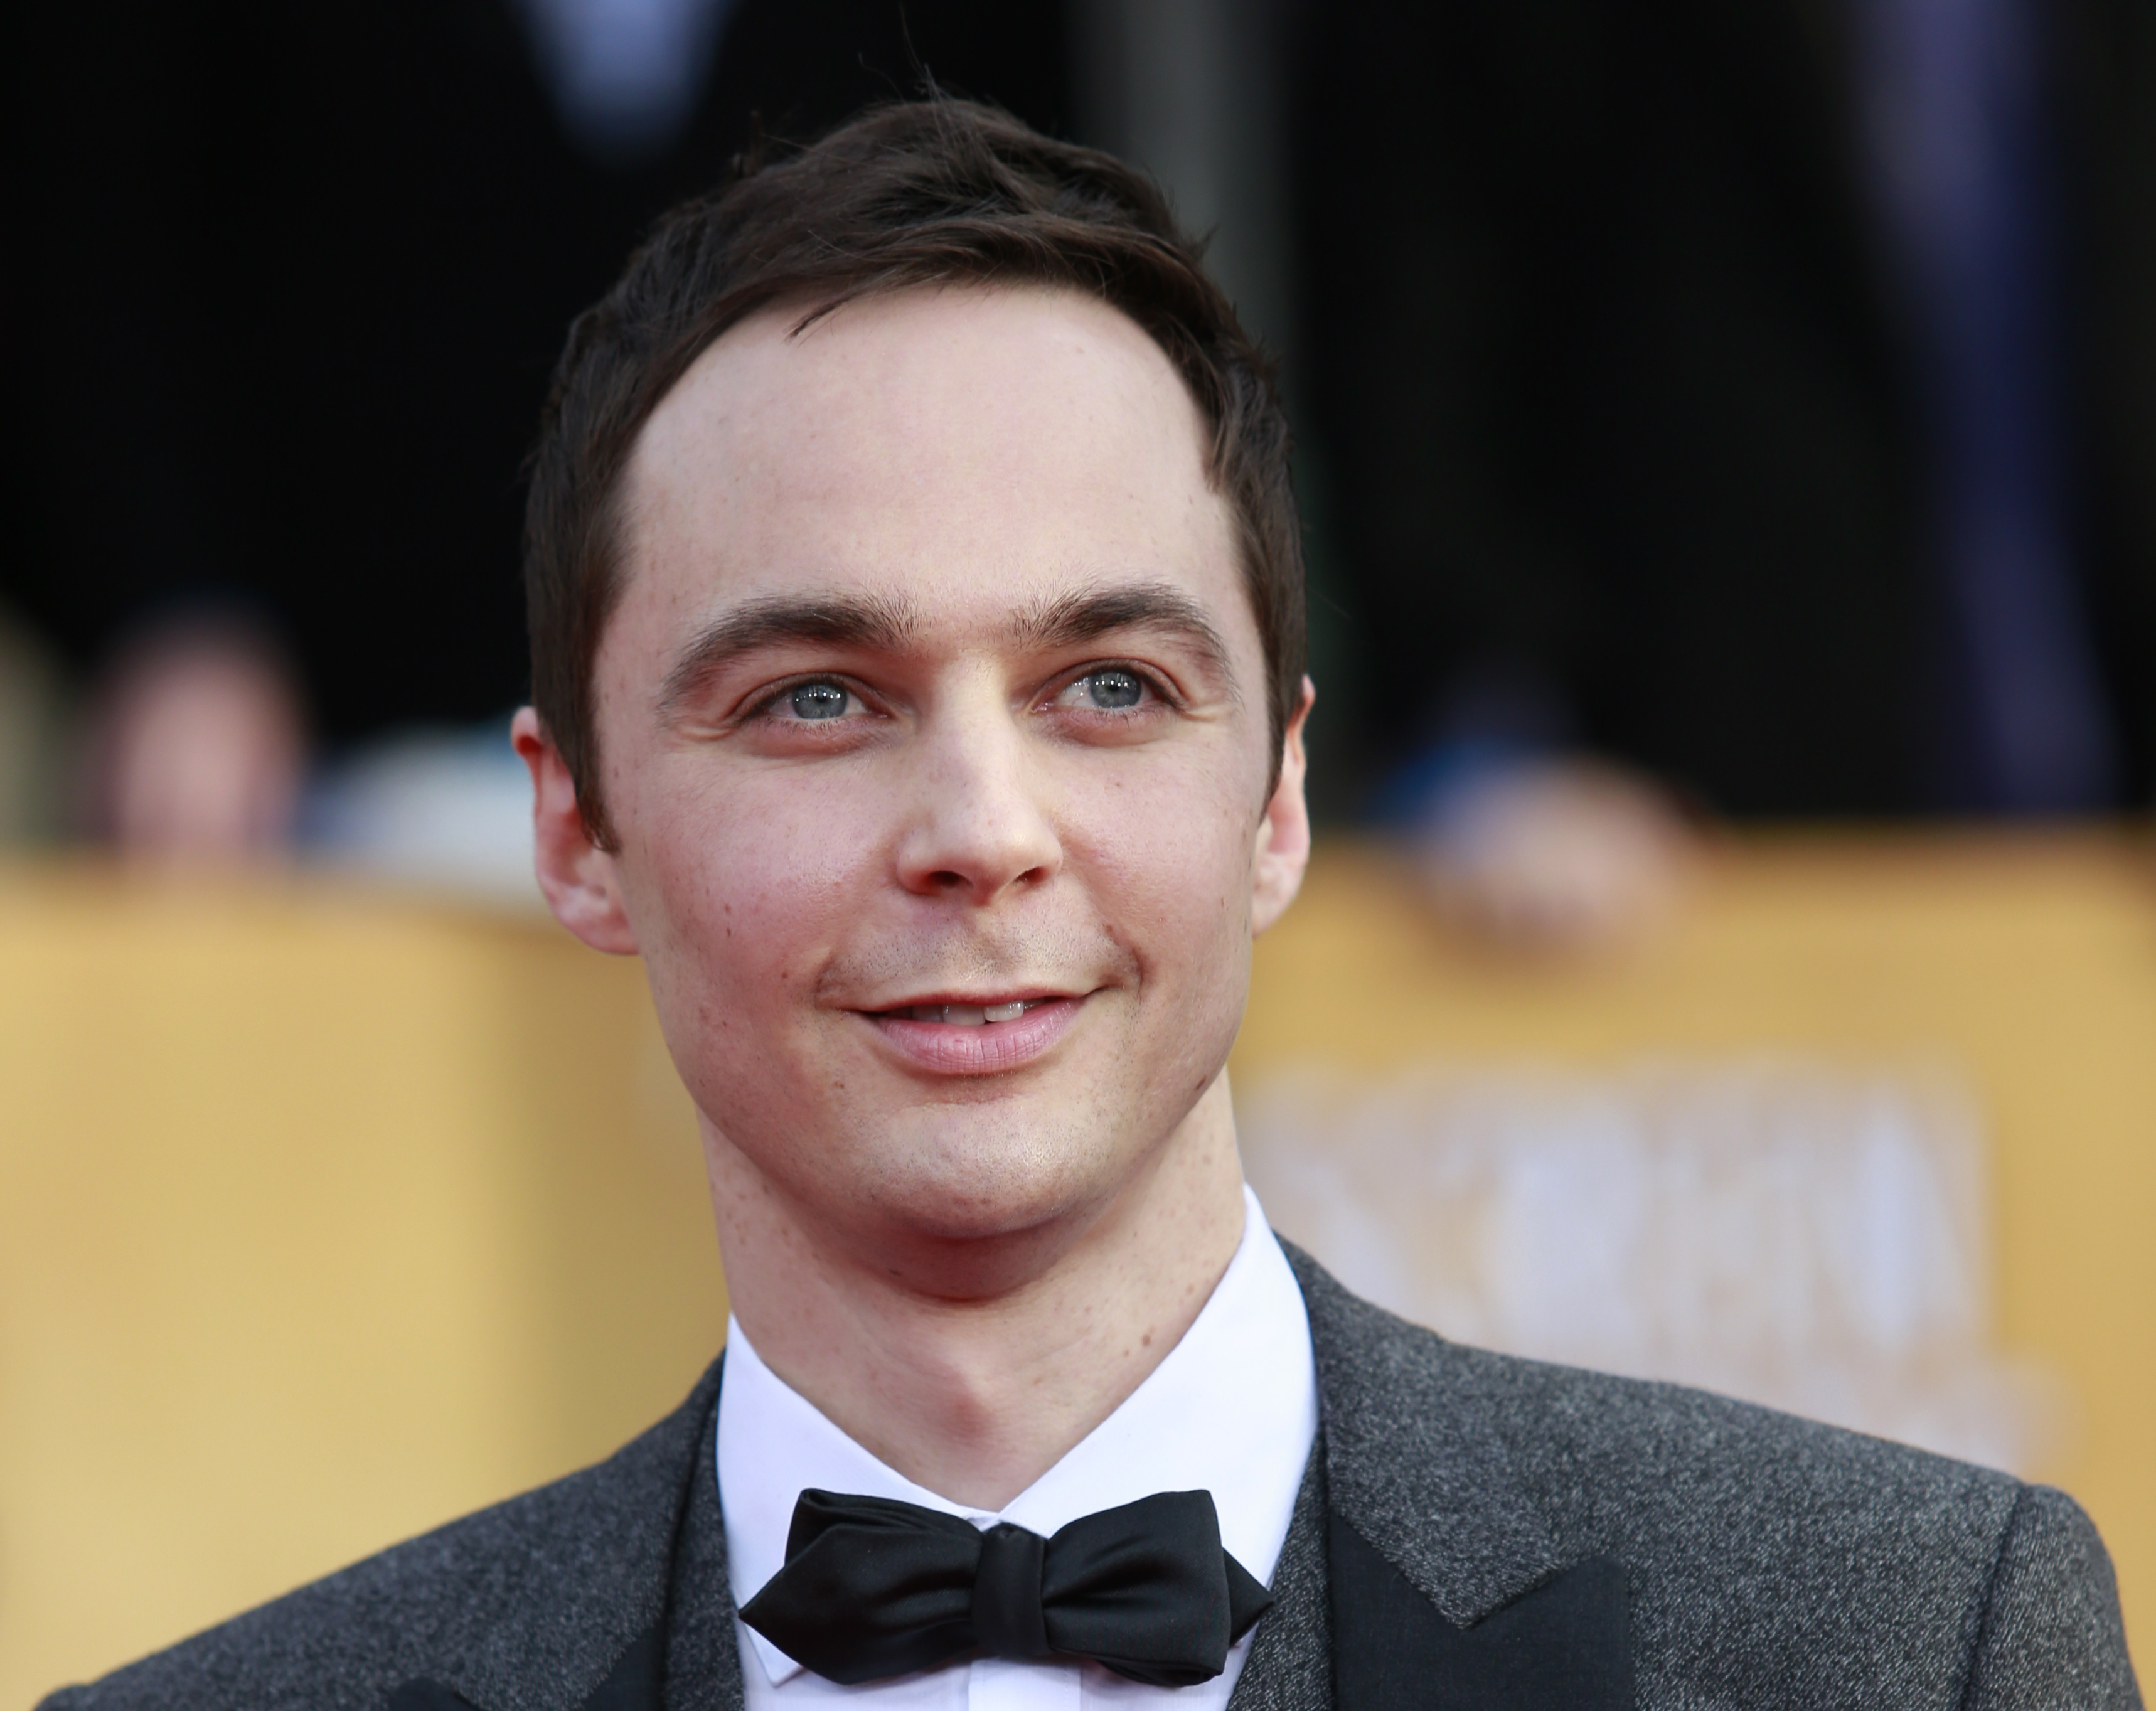 """Actor Jim Parsons of the TV comedy """"The Big Bang Theory"""" arrives at the 19th annual Screen Actors Guild Awards in Los Angeles, California January 27, 2013. REUTERS/Adrees Latif (UNITED STATES - Tags: ENTERTAINMENT) (SAGAWARDS-ARRIVALS) - RTR3D2AN"""